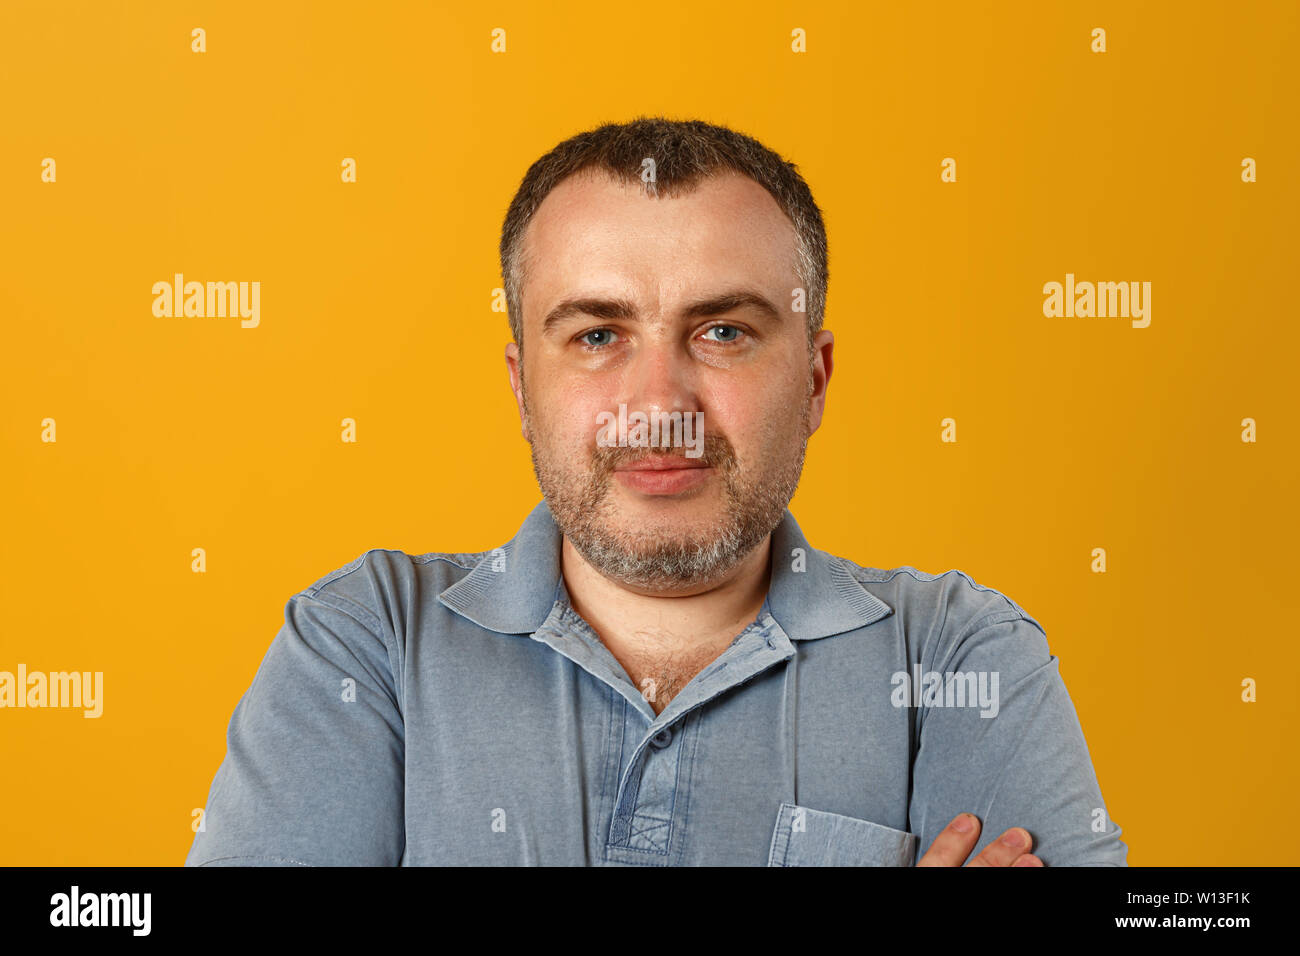 Serious man with folded arms and a deadpan expression posing in front of a yellow background. - Stock Image